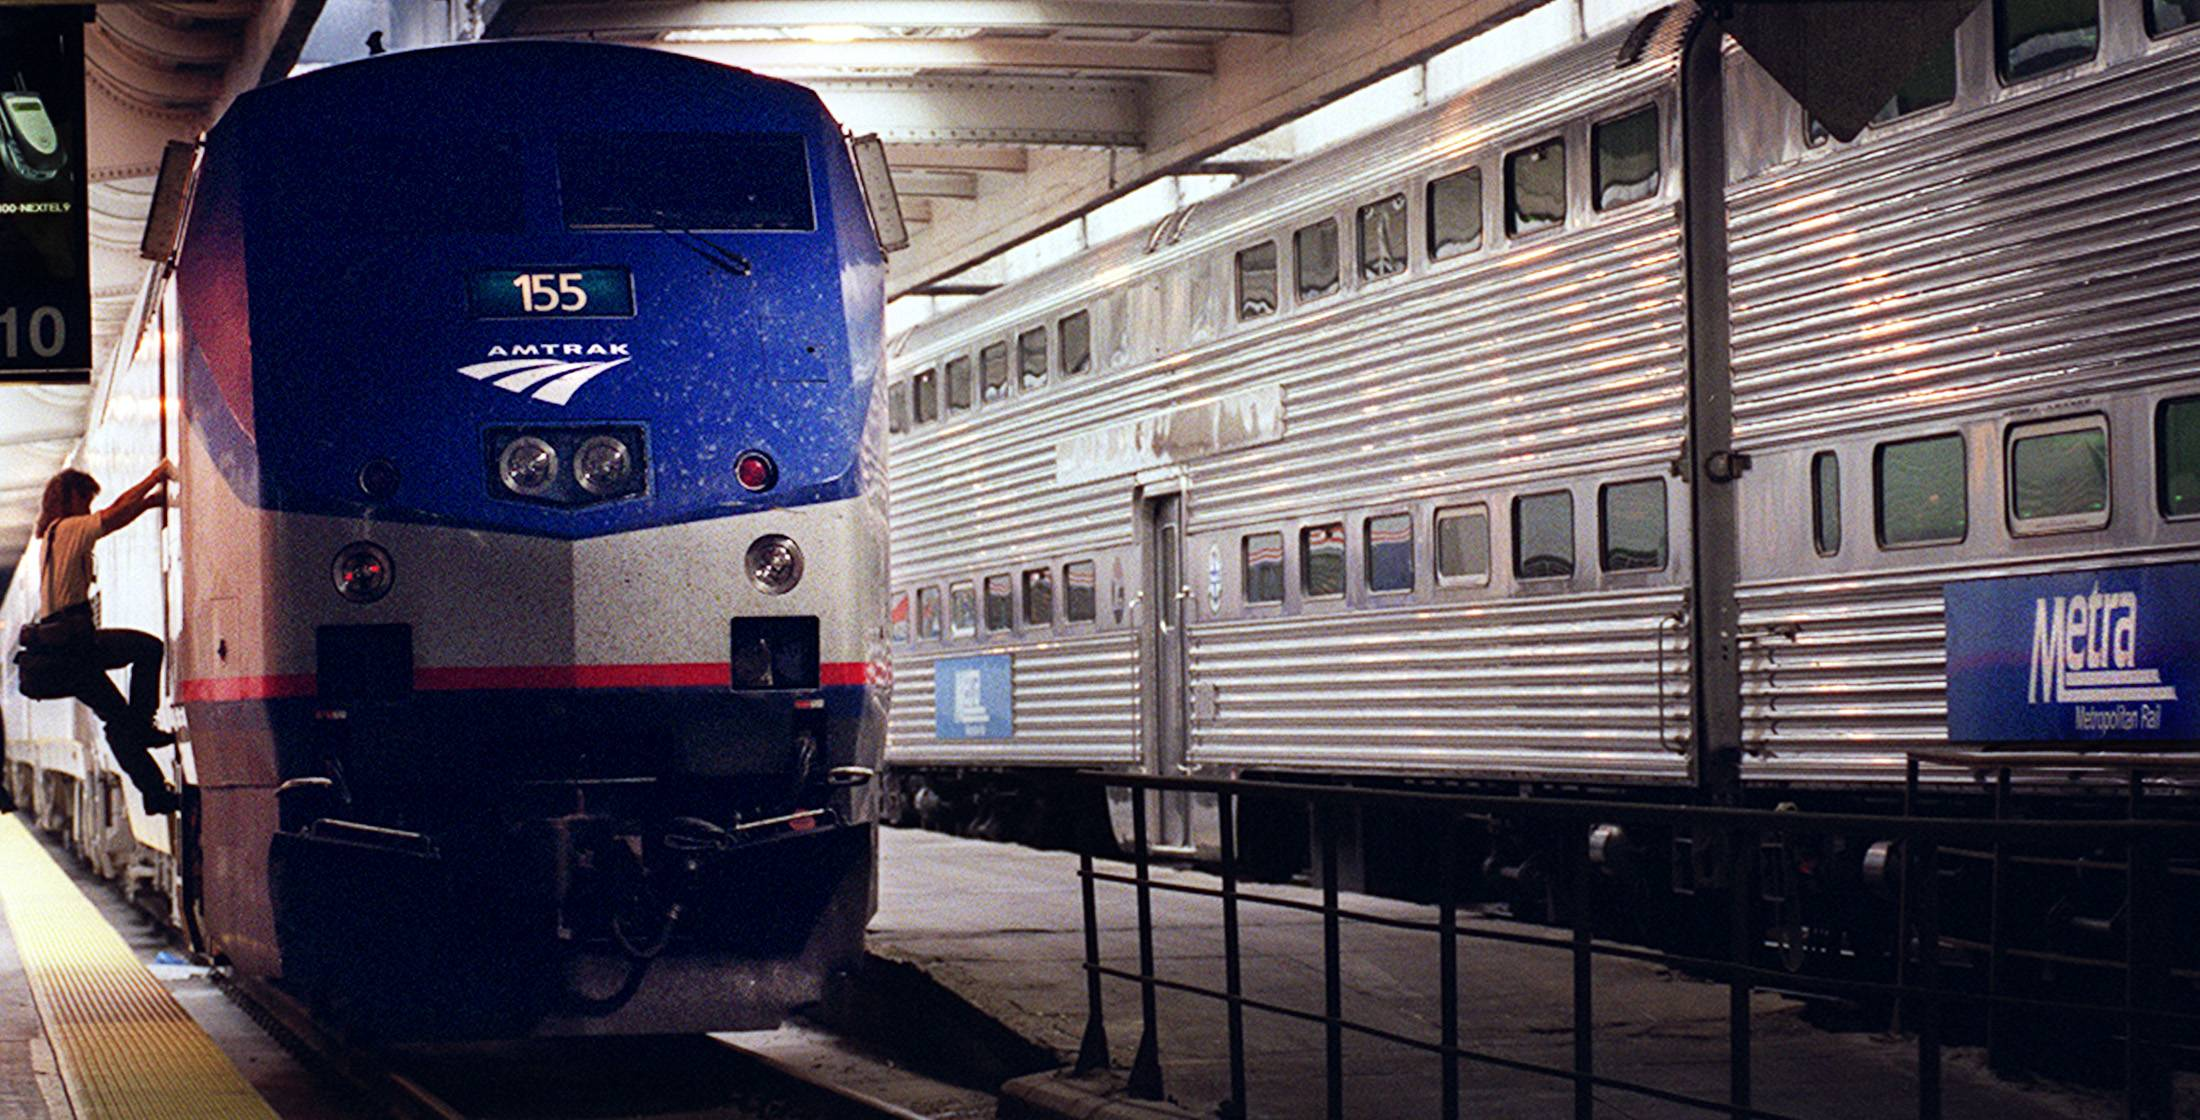 Metra commuter rail officials say about 450 non-union employees received pay increases this month averaging 8 percent.